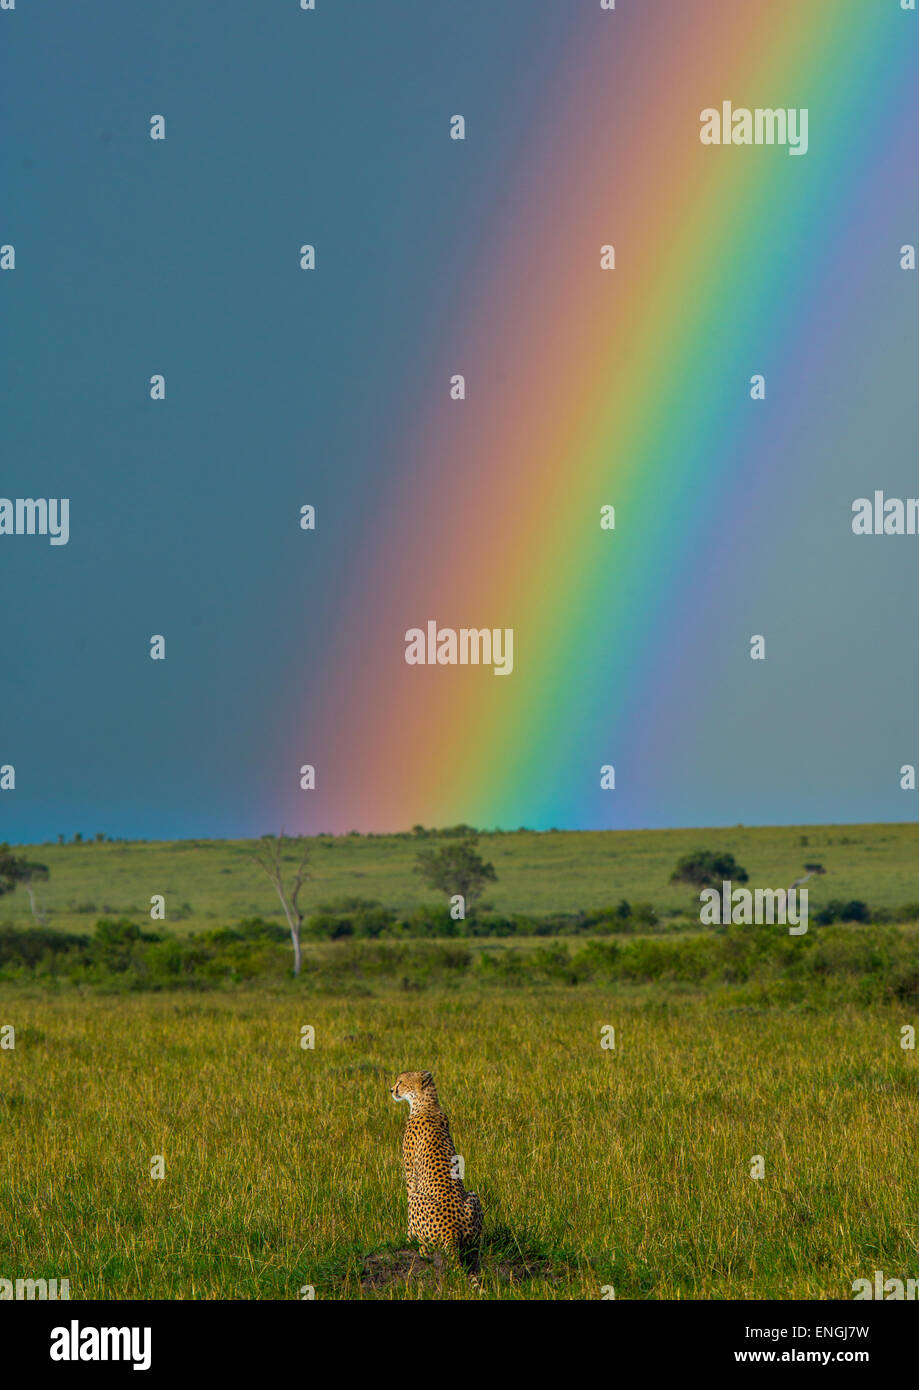 Cheetah (Acinonyx Jubatus) In Front Of A Rainbow, Rift Valley Province, Maasai Mara, Kenya Stock Photo